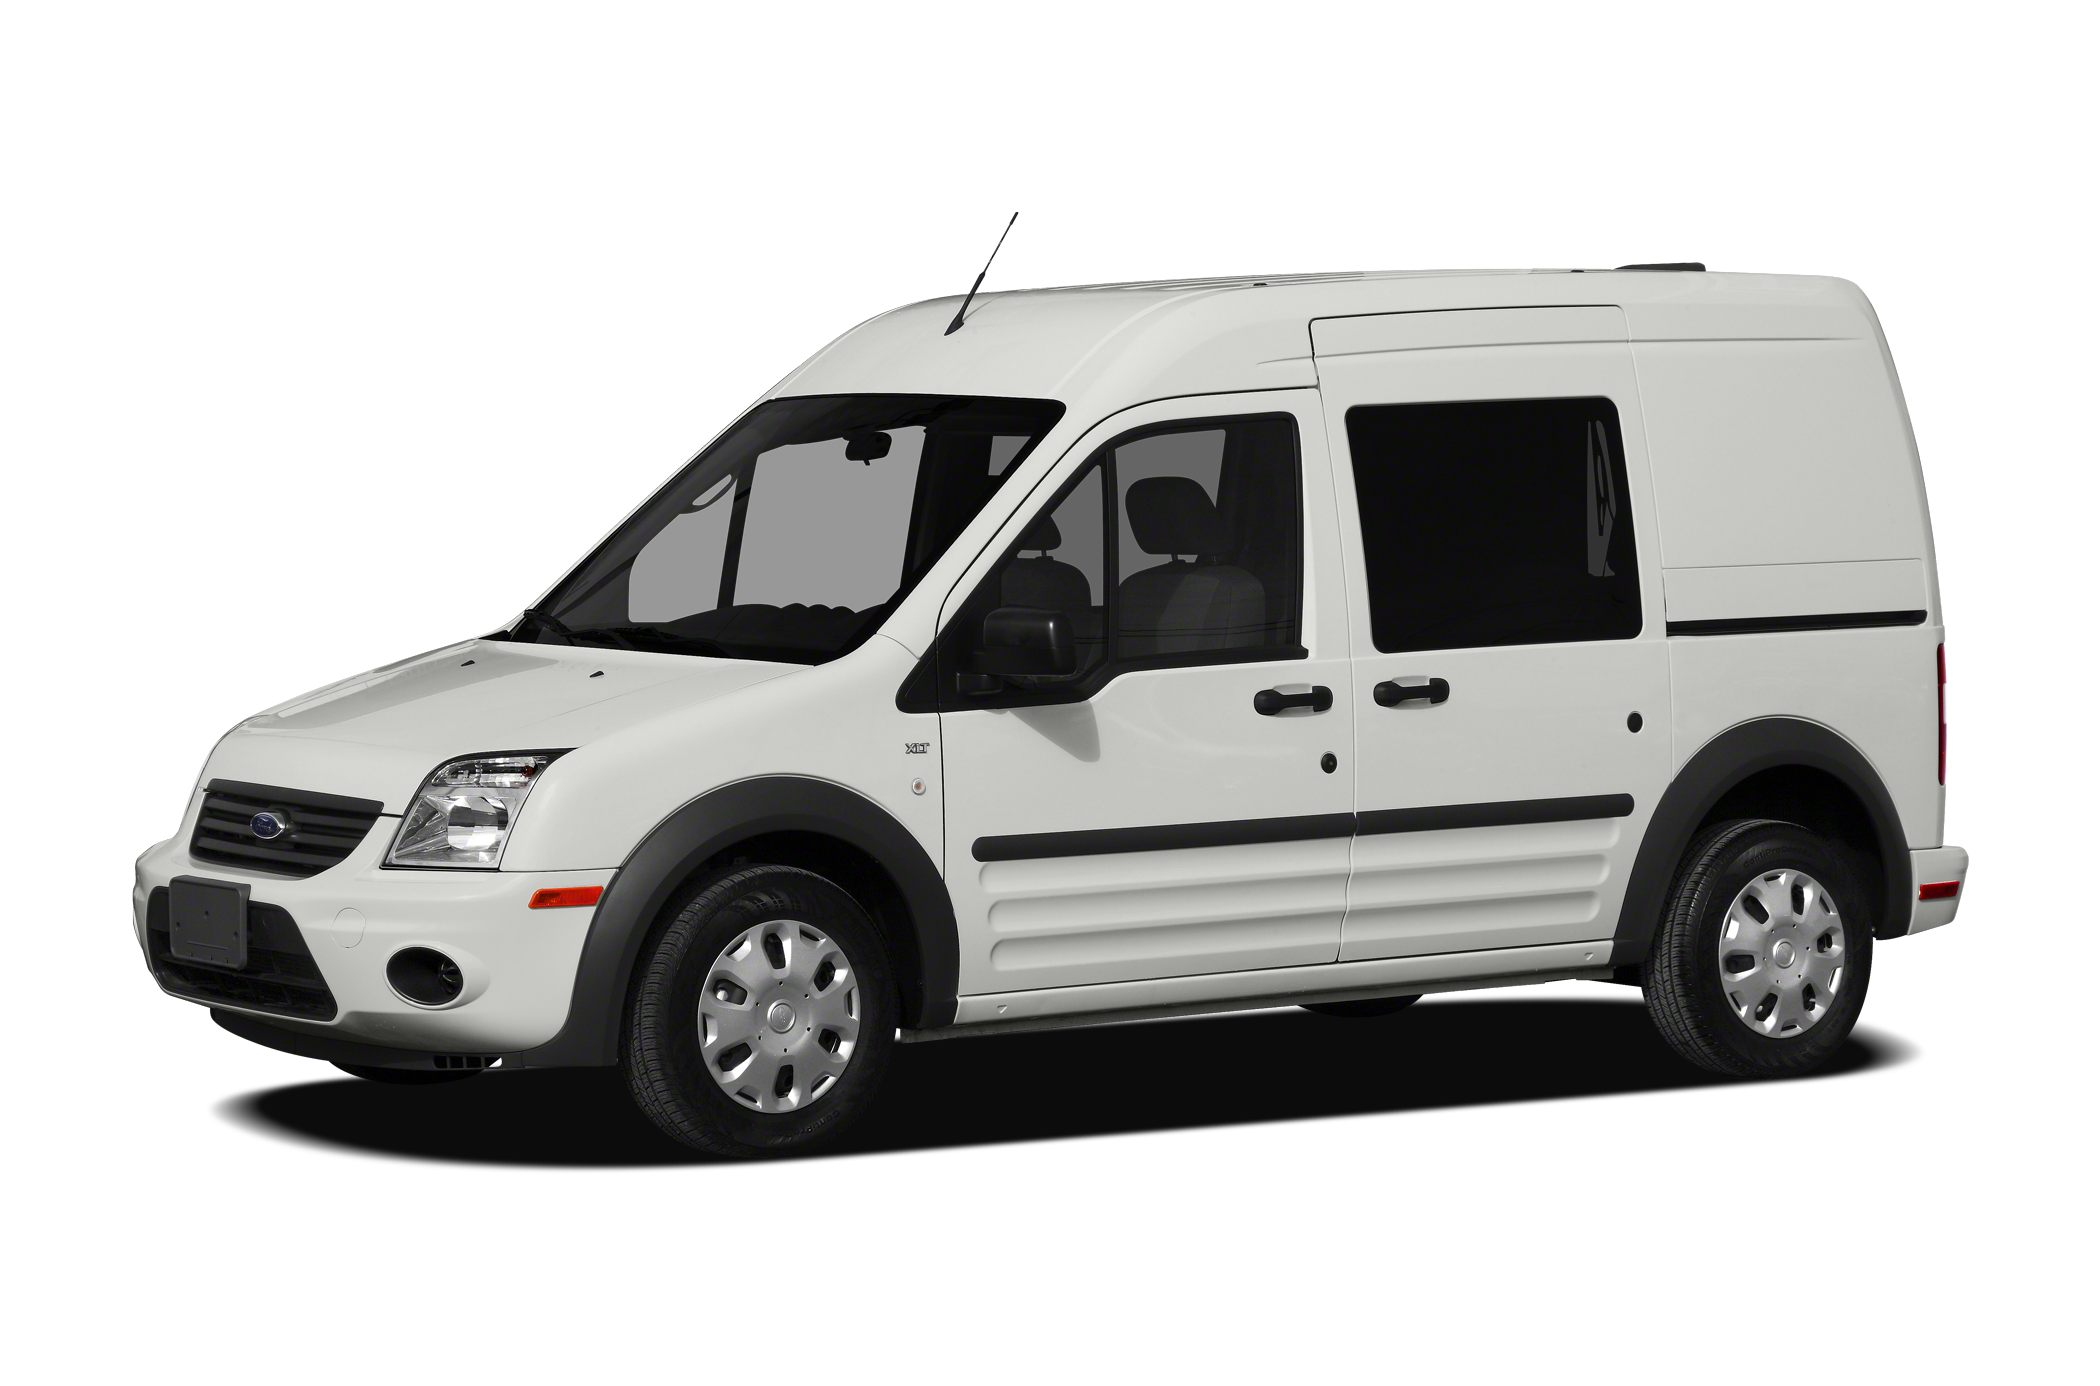 2010 Ford Transit Connect XLT Cargo Van for sale in Dayton for $11,999 with 111,150 miles